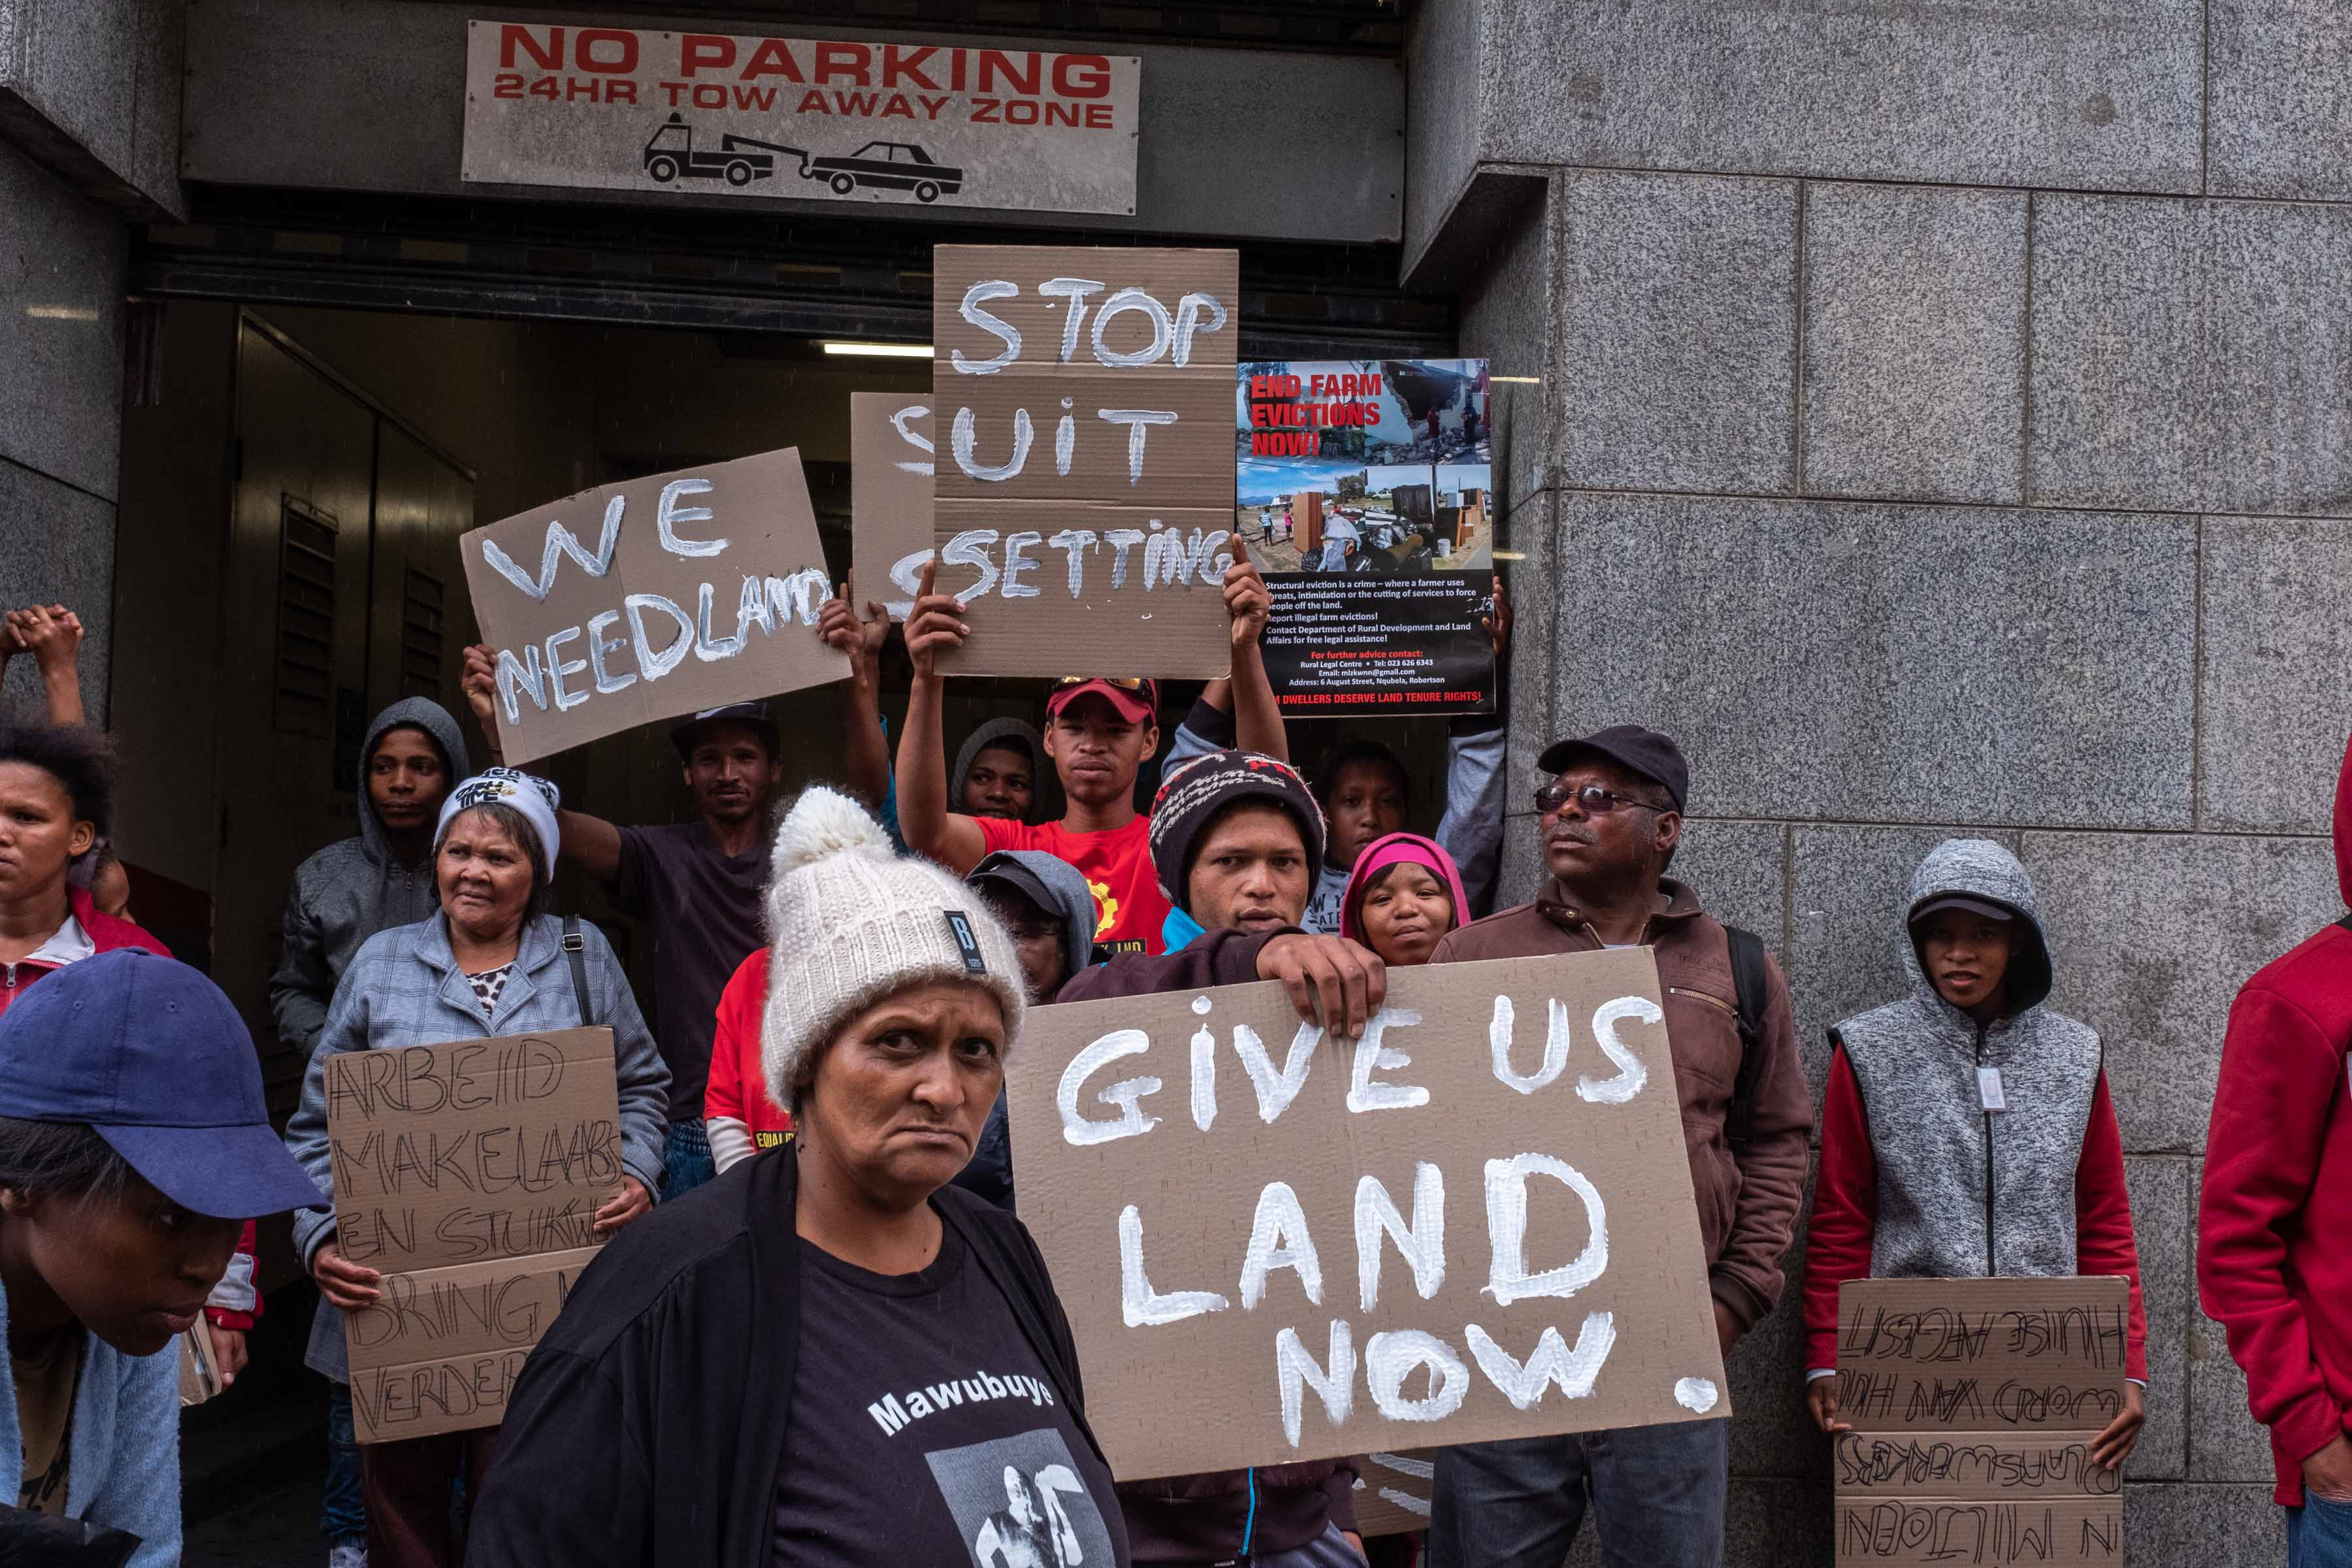 21 September 2019: Land was one of the issues for which union members were campaigning.